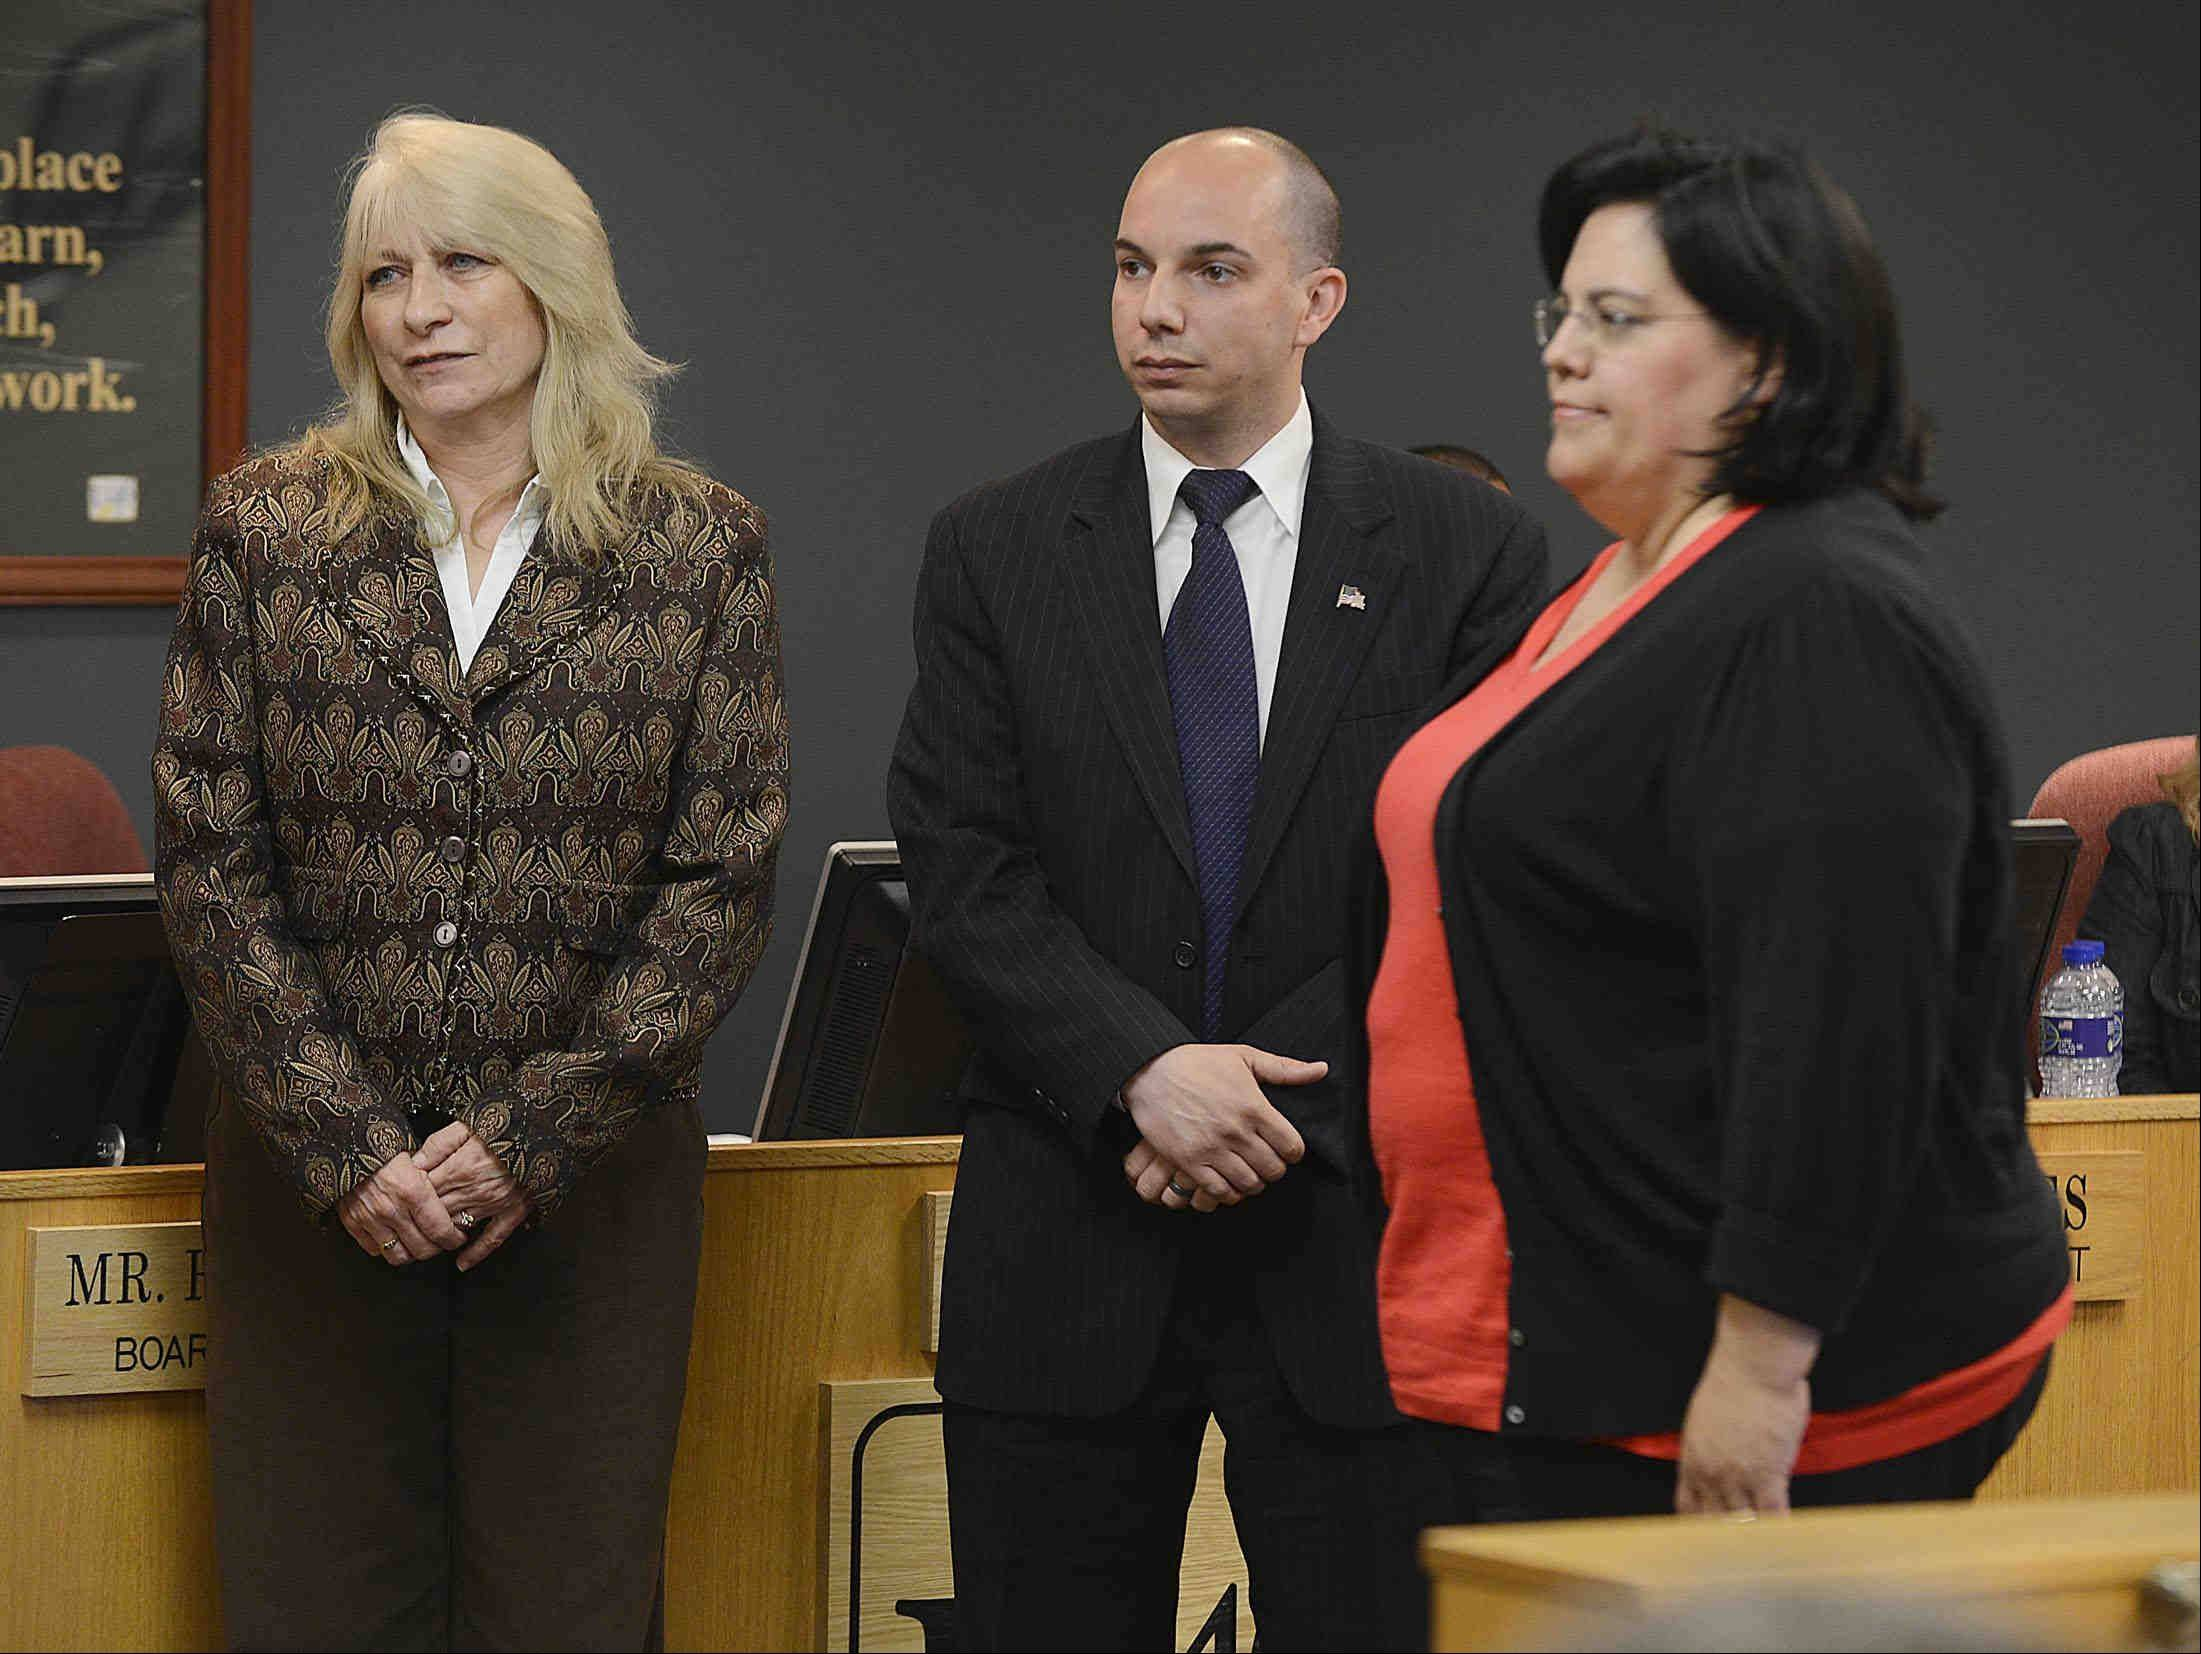 Donna Smith, middle left, takes her fourth oath of office as she is sworn in Monday night with new U-46 board members Veronica Noland and Frank Napolitano in Elgin. Smith was re-elected board president by her peers.